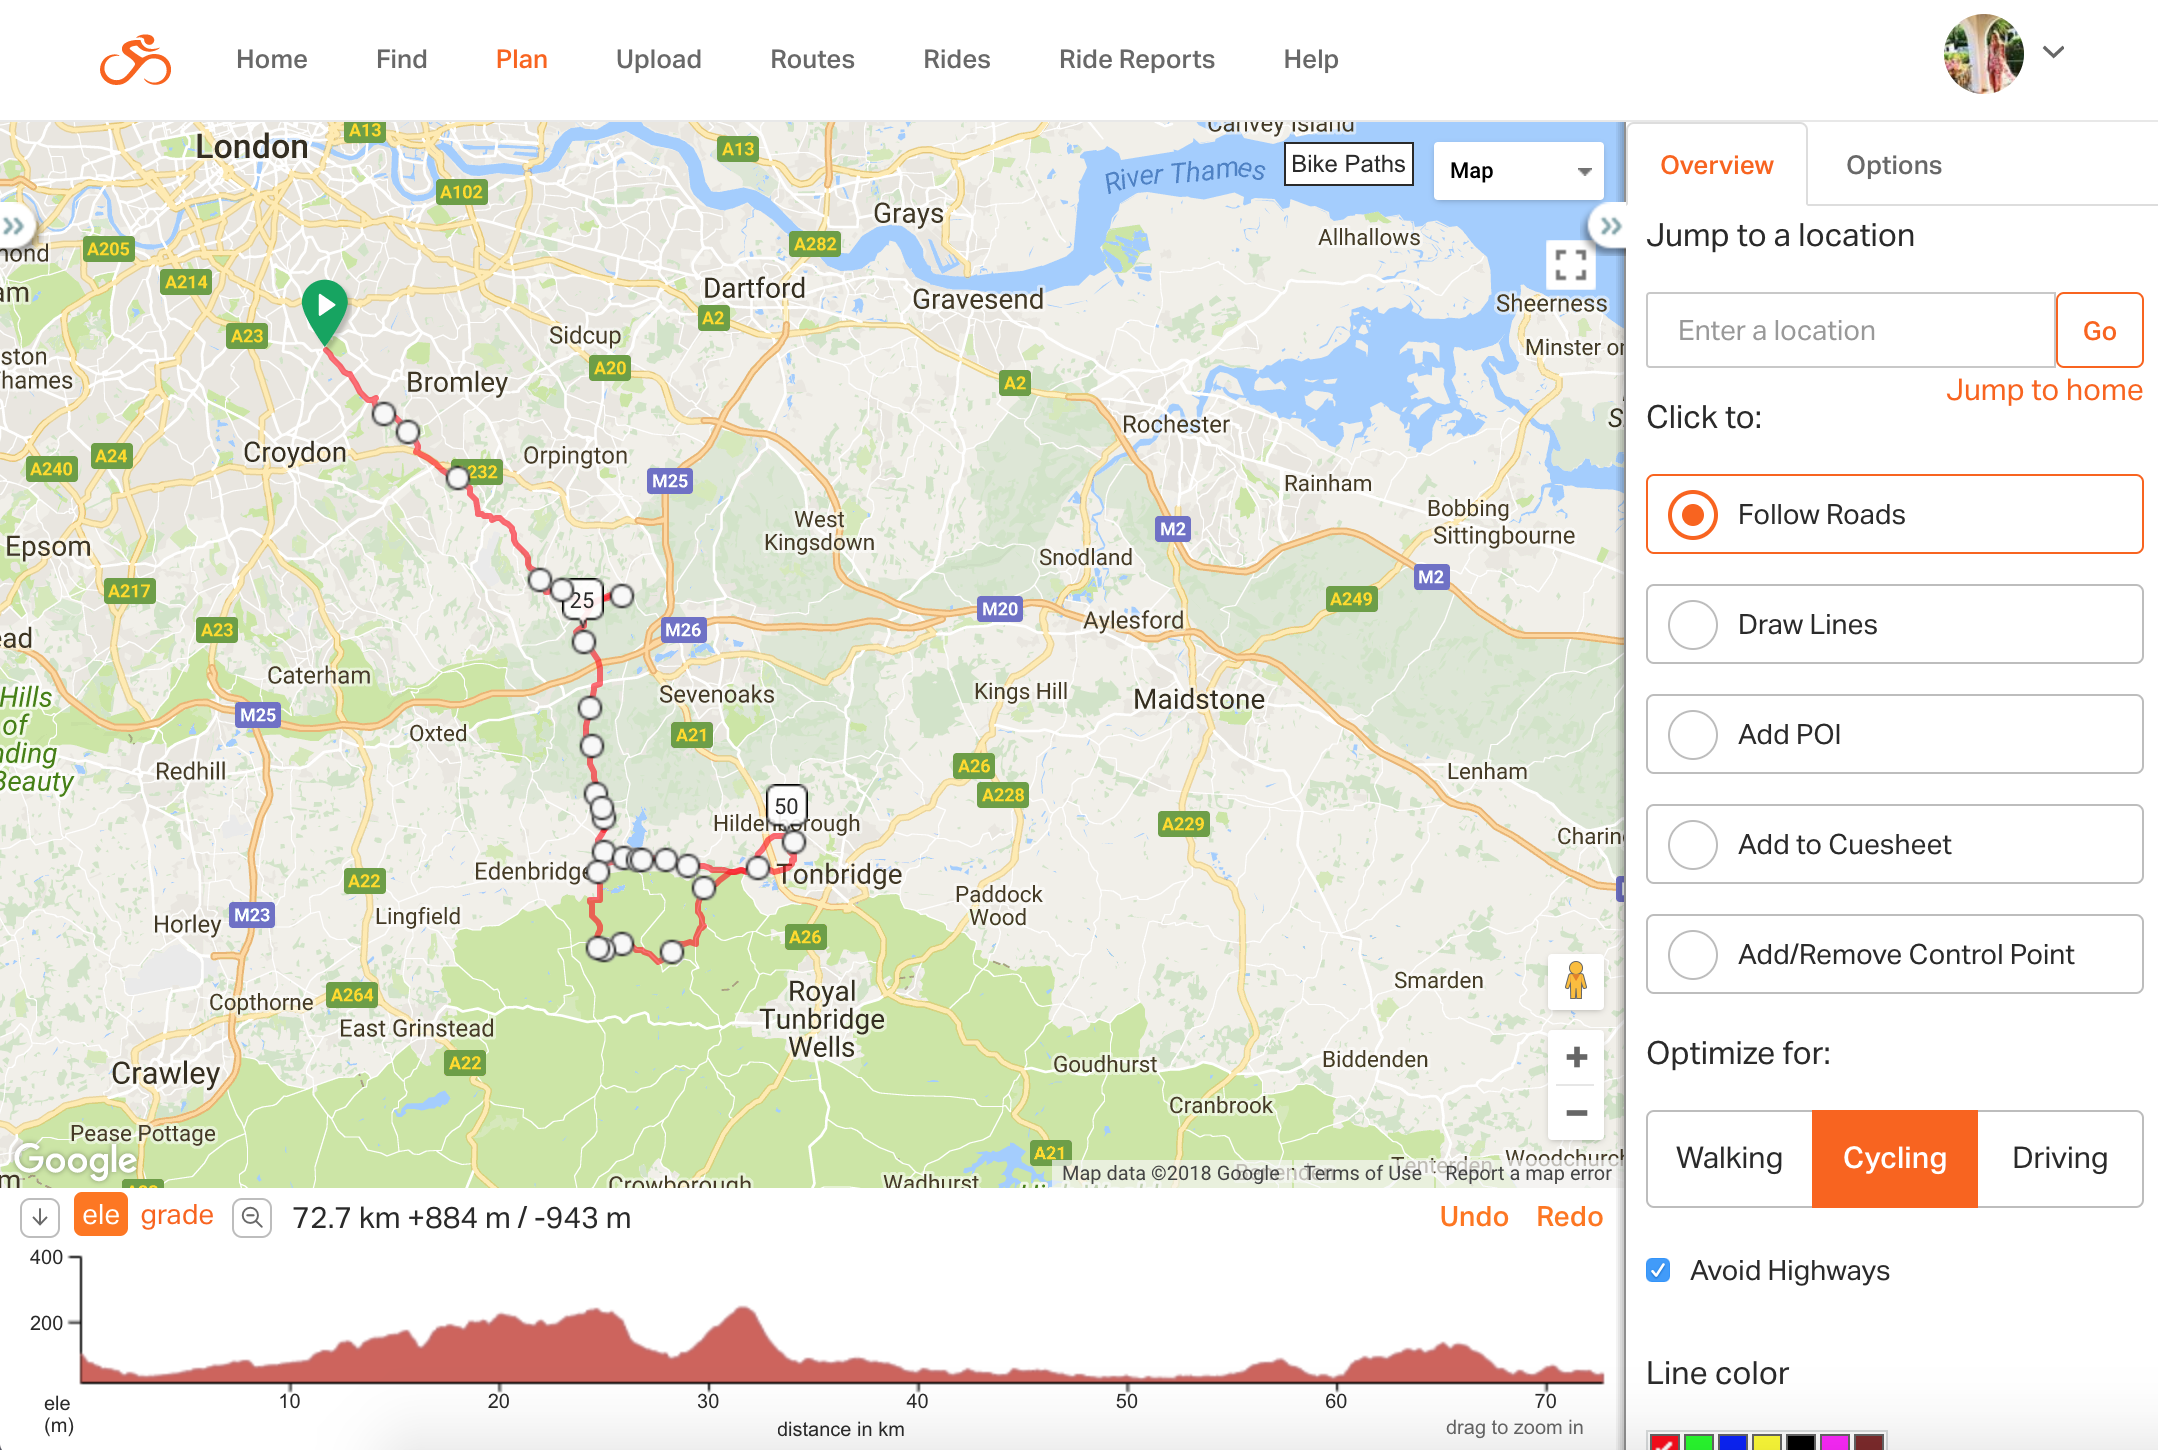 Check out the elevation graph at the bottom, so you can pre-prepare for any big hills to climb along the way. Keep note of the metres of climbing for the distance, you don't want to be spending all day climbing up gruelling big hills... or you might!